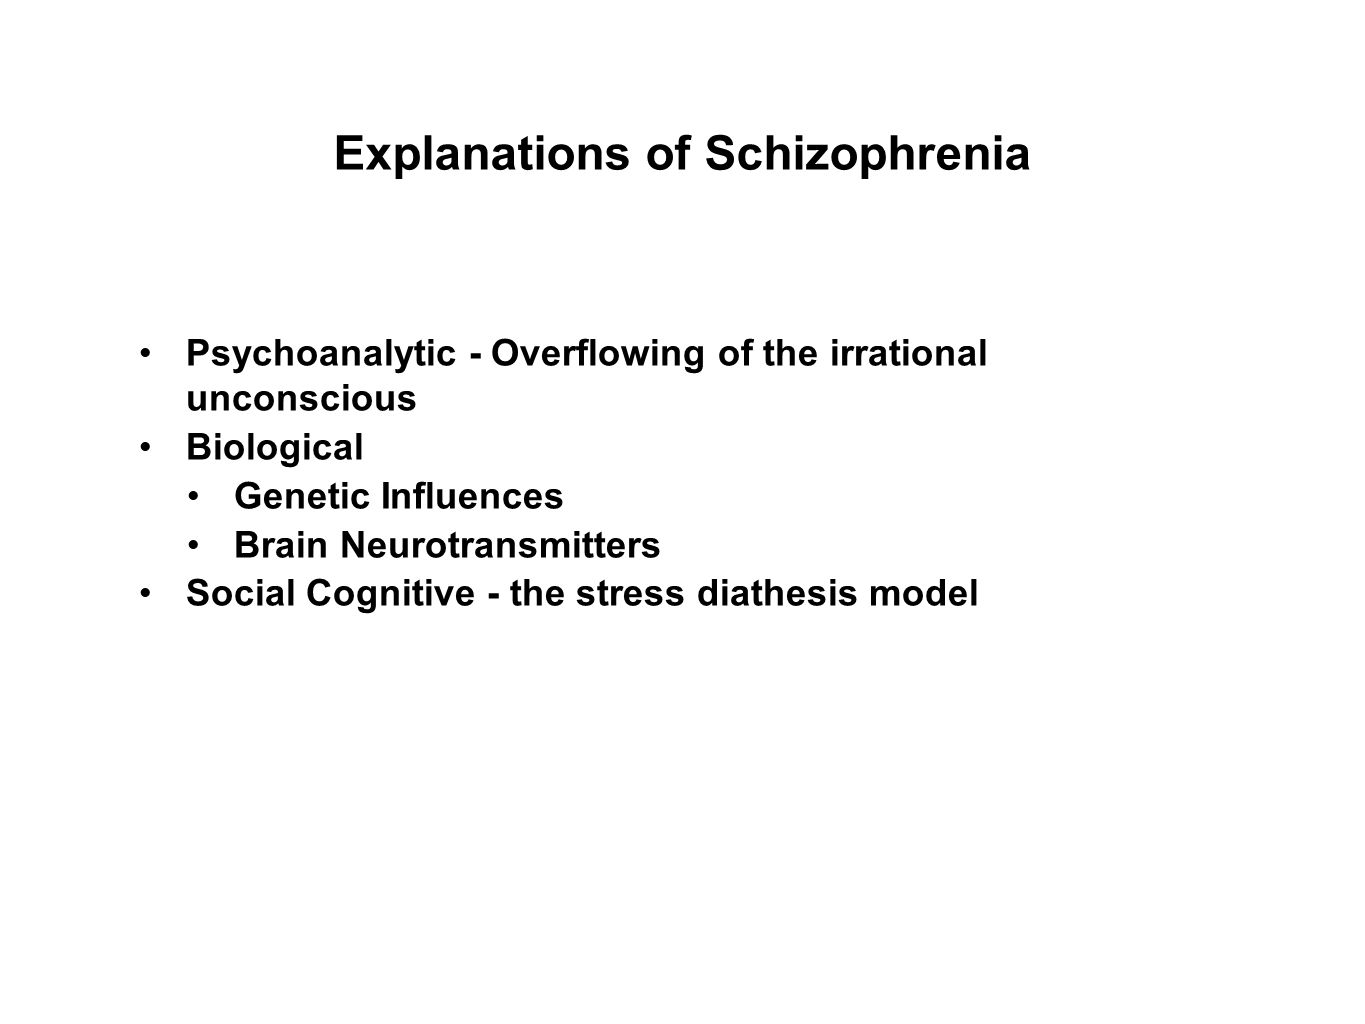 Explanations of Schizophrenia Psychoanalytic - Overflowing of the irrational unconscious Biological Genetic Influences Brain Neurotransmitters Social Cognitive - the stress diathesis model